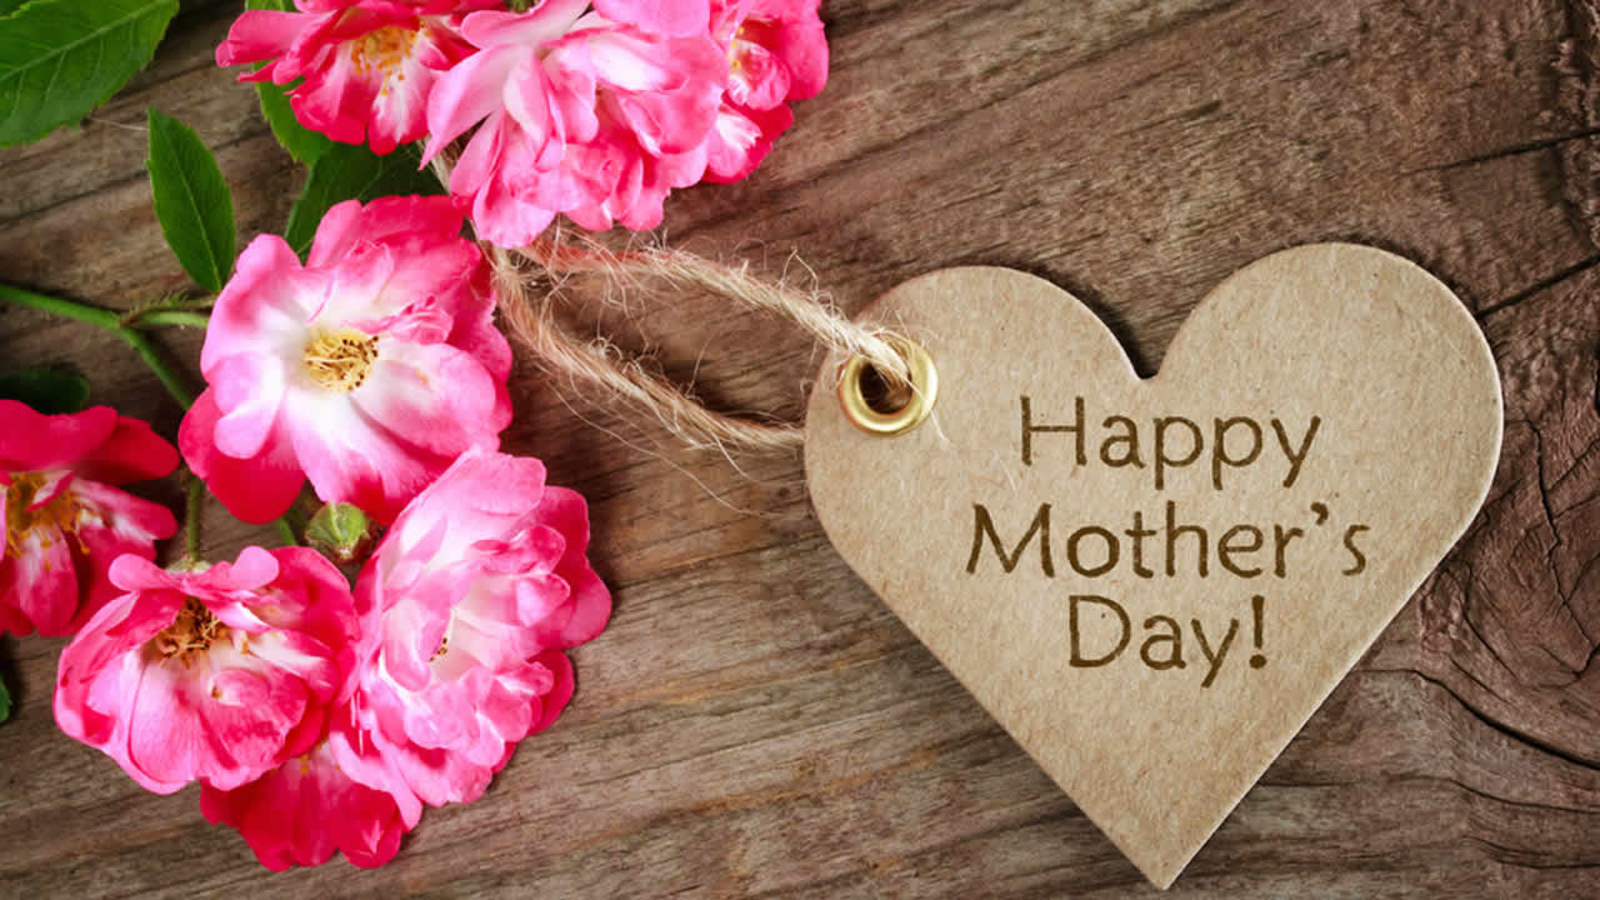 Celebrities, companies use Twitter, Instagram, Facebook to thank mom on Mother's  Day - ABC7 New York